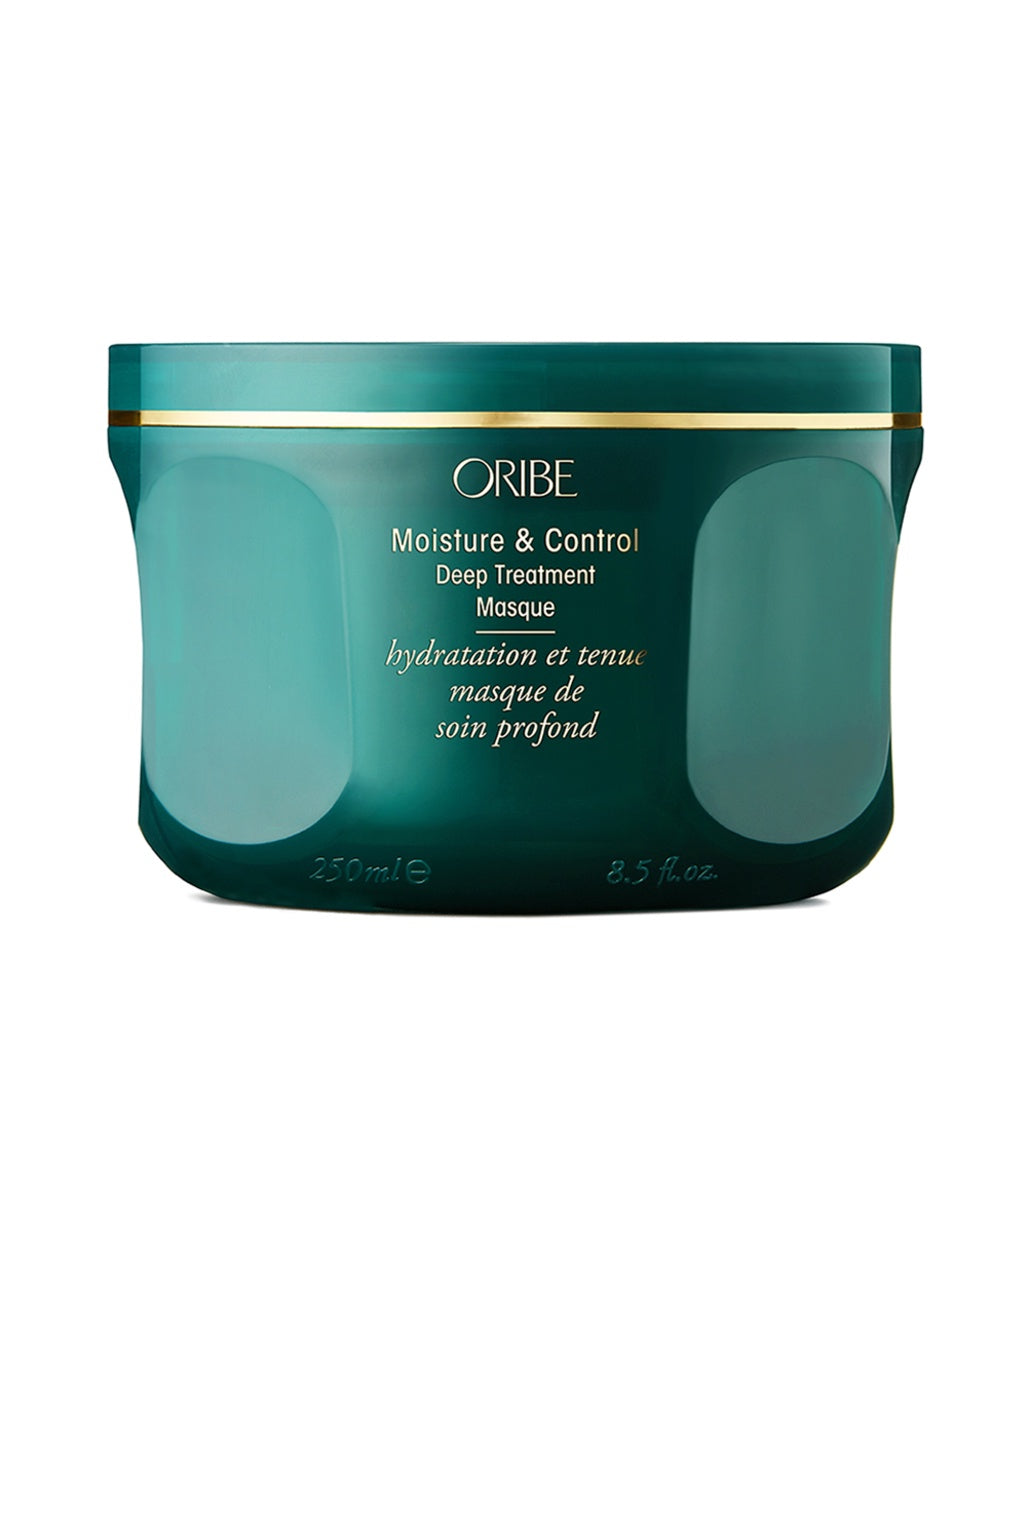 oribe - moisture & control deep treatment mask[product_type ]oribe - Kiss and Makeup